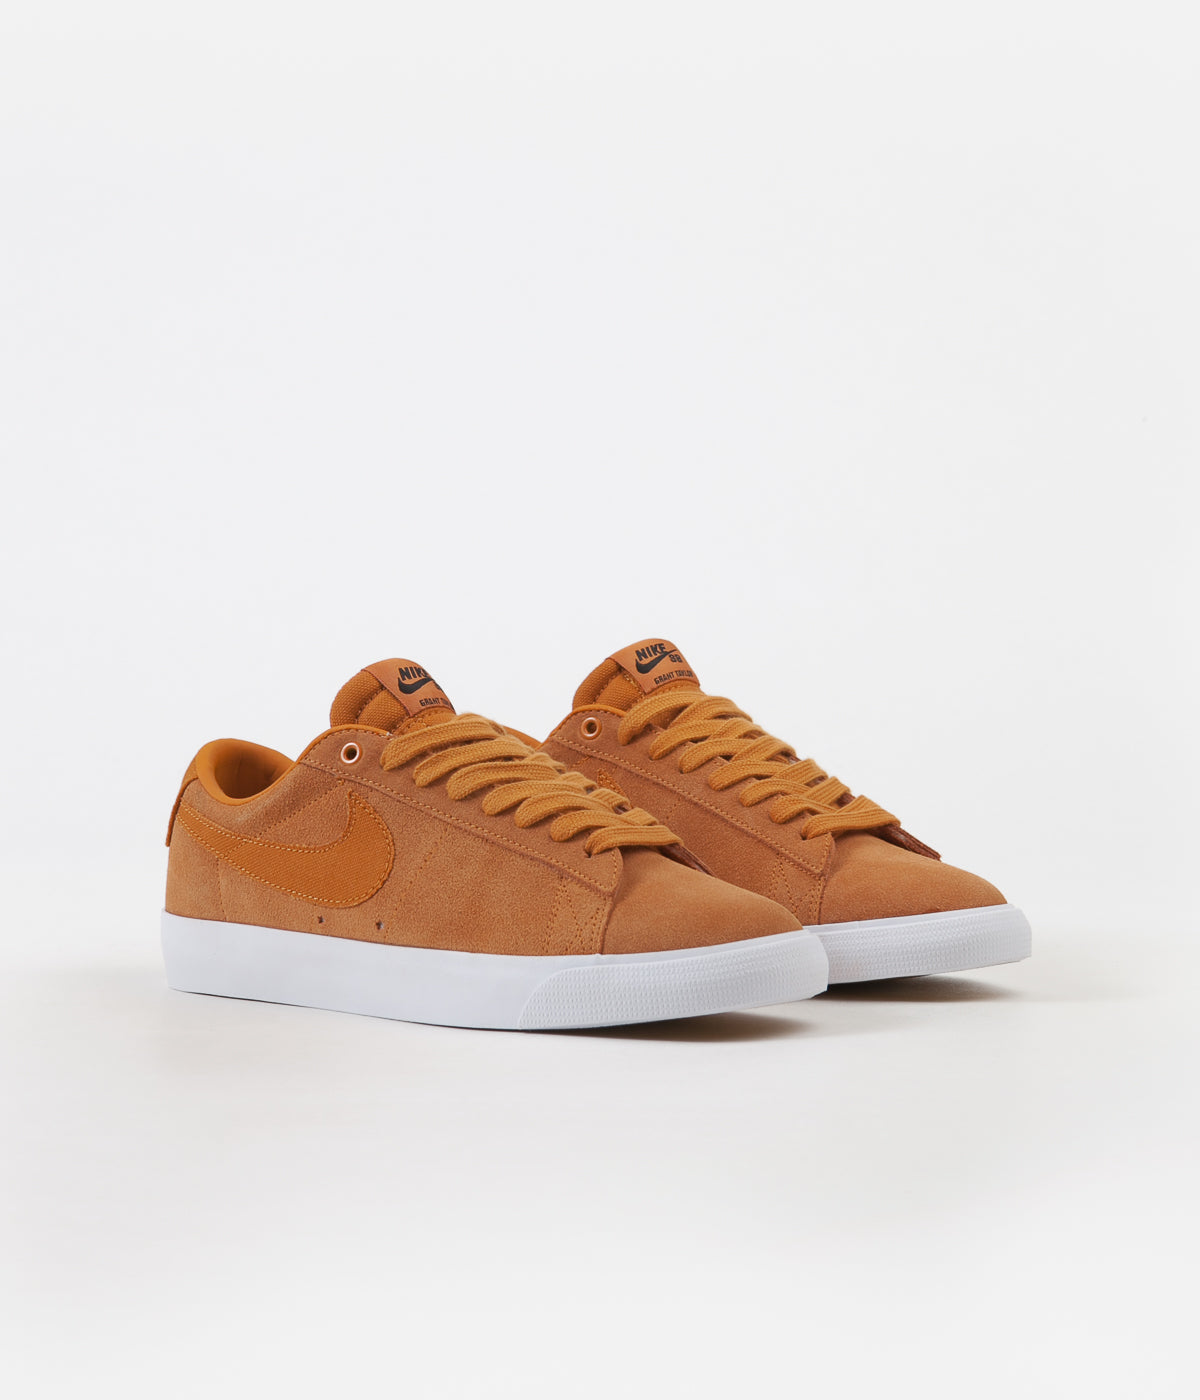 6cd403f207a70a ... Nike SB Blazer Low GT Shoes - Cinder Orange   Cinder Orange - Obsidian  ...